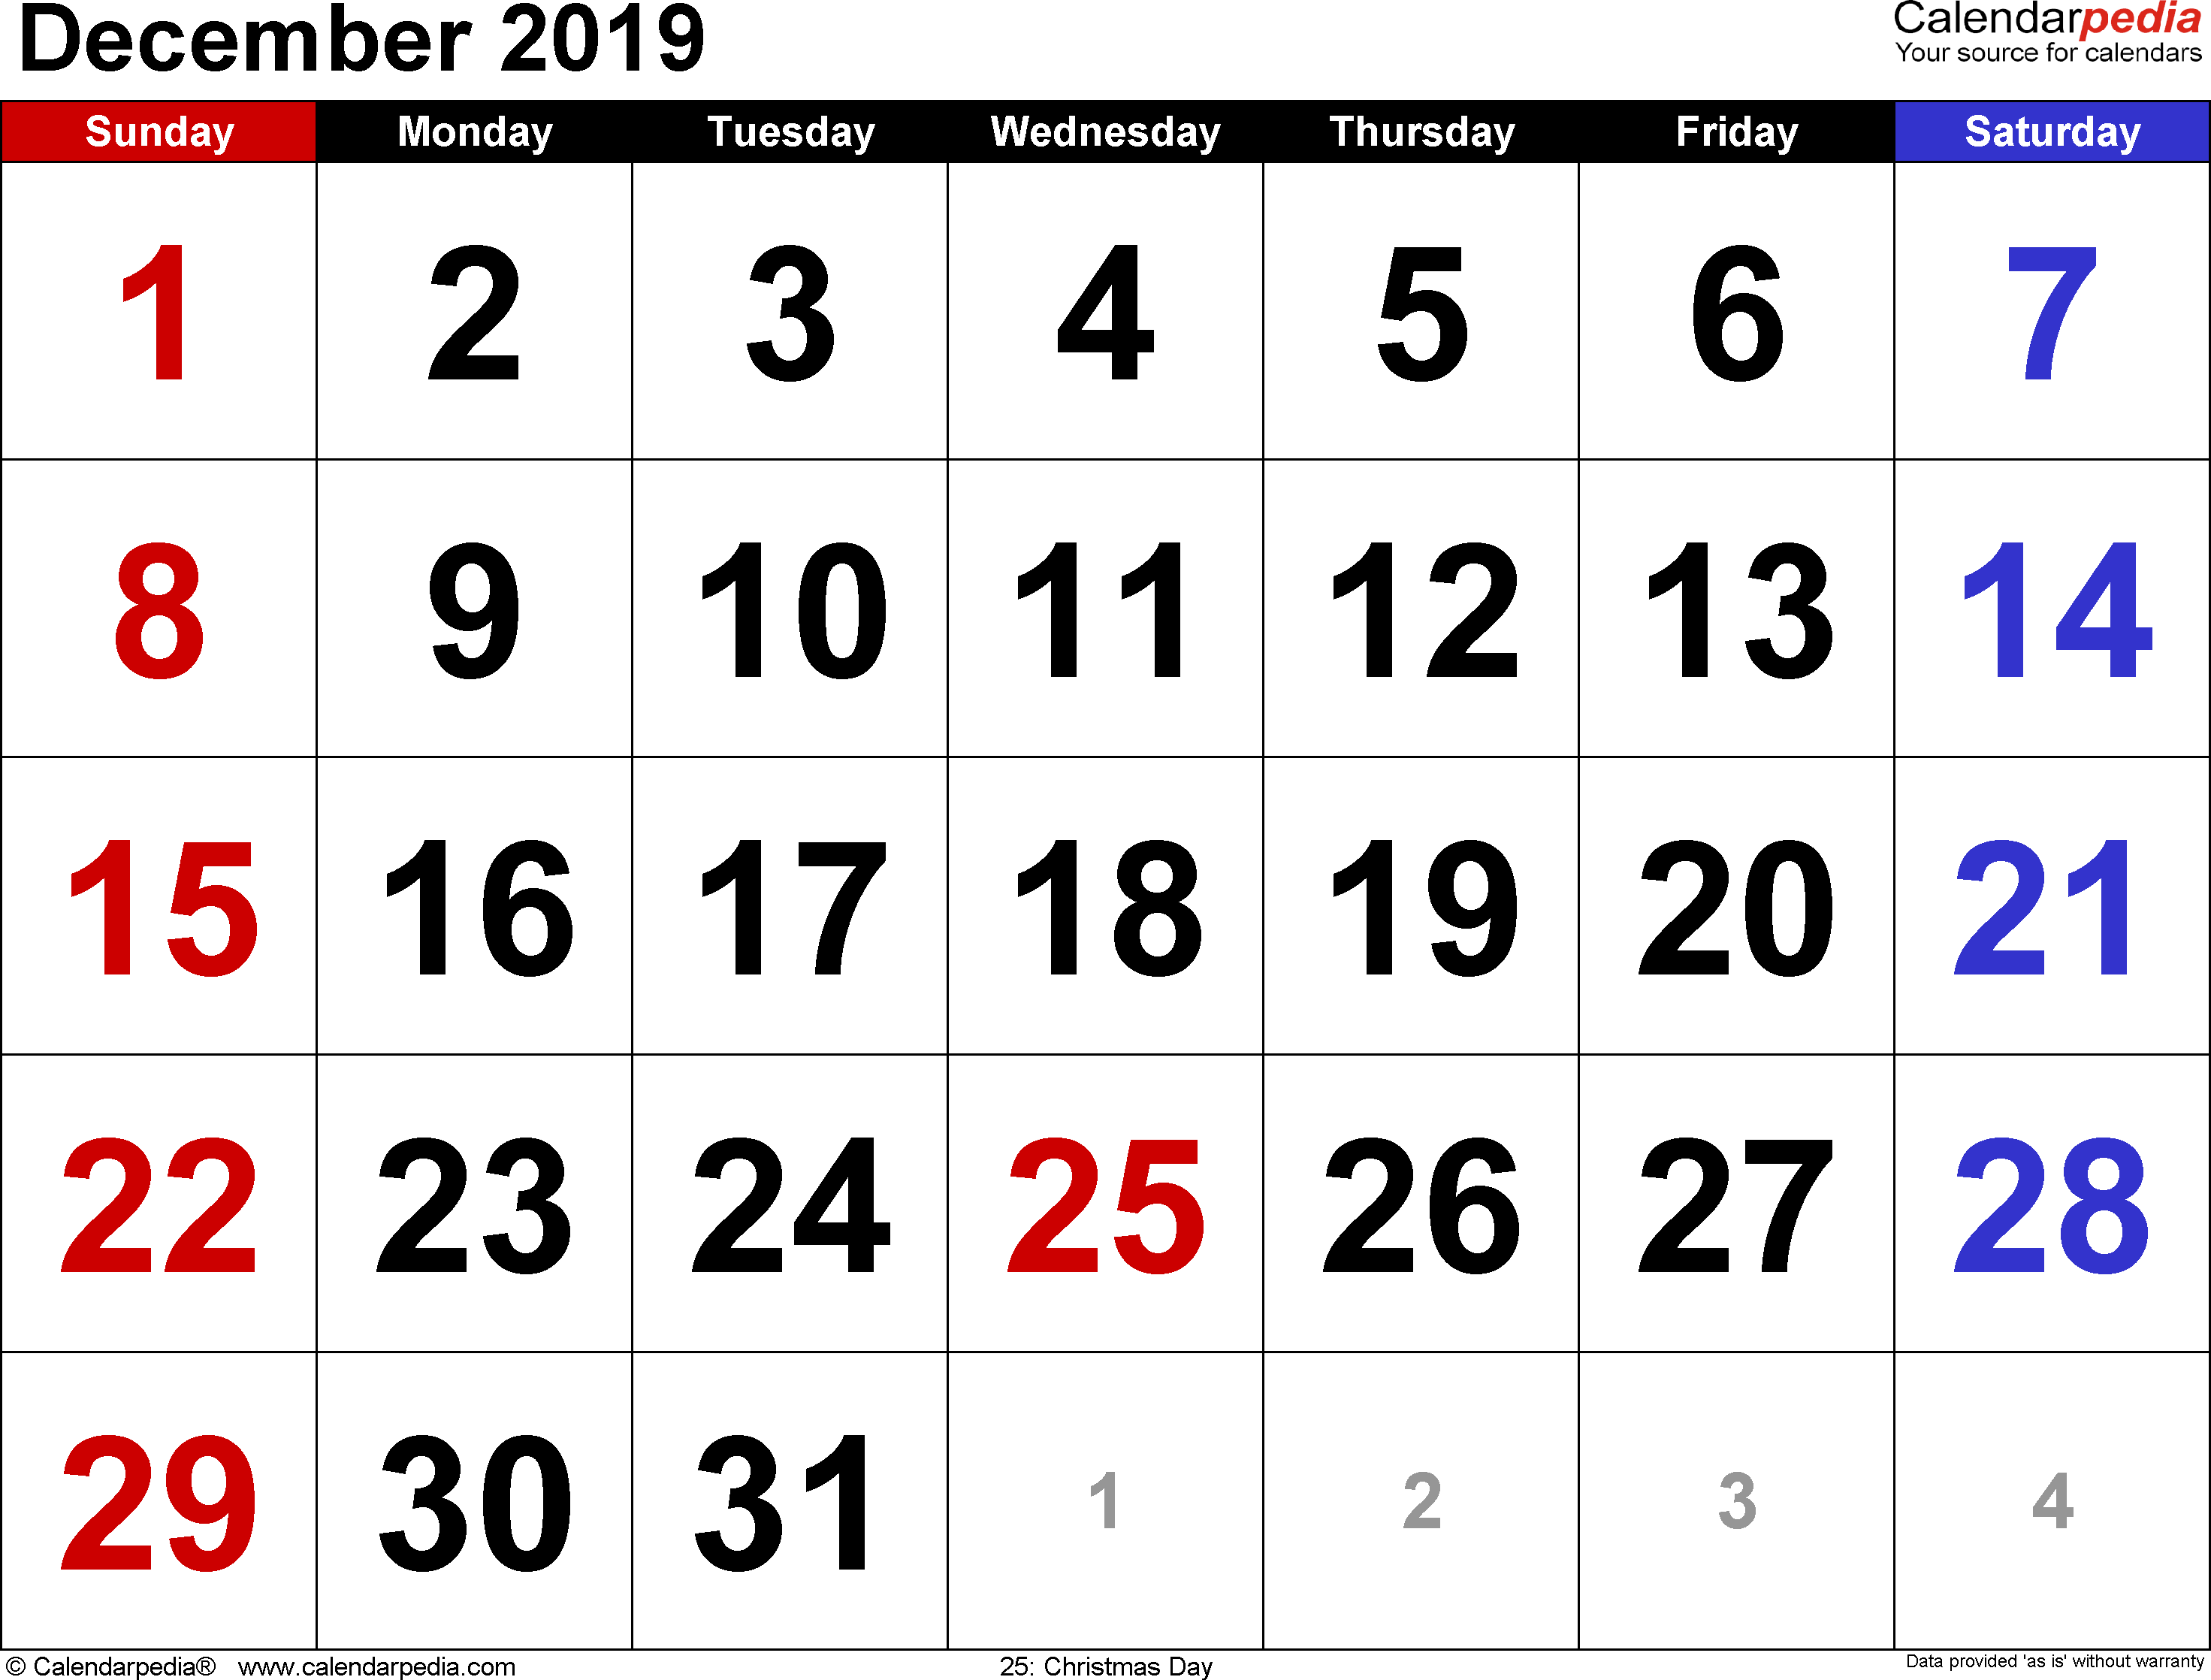 December 2019 Calendars For Word Excel Pdf